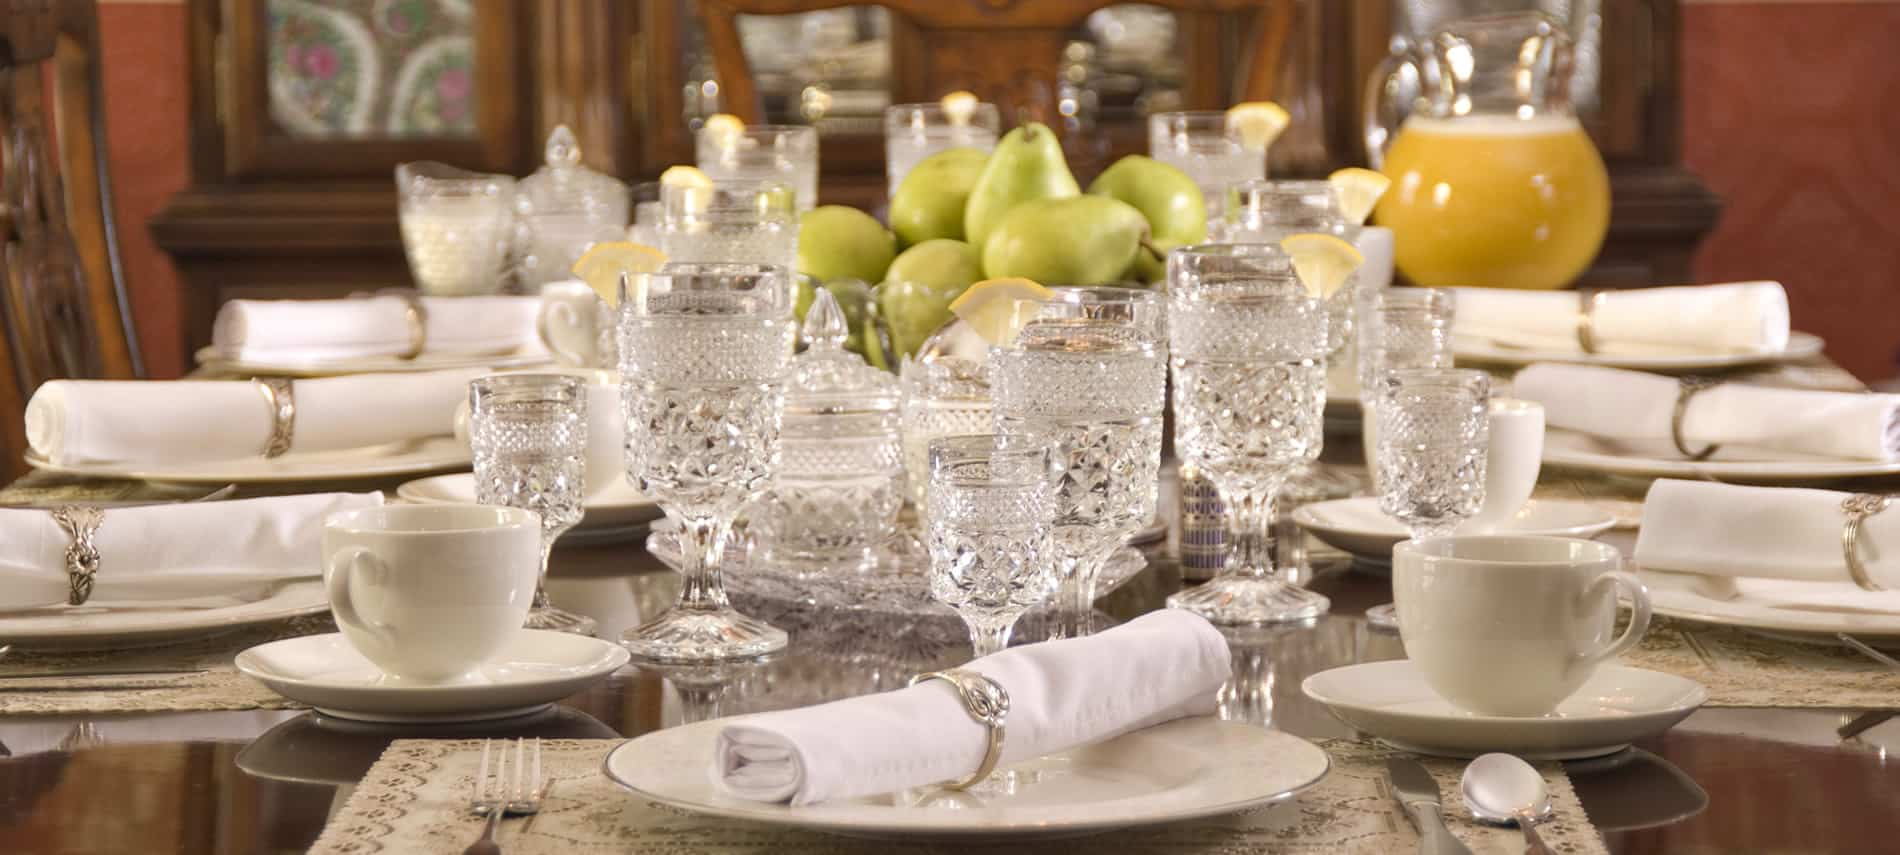 Close-up view of dining table set for a meal with ivory china, white napkins, and crystal glassware